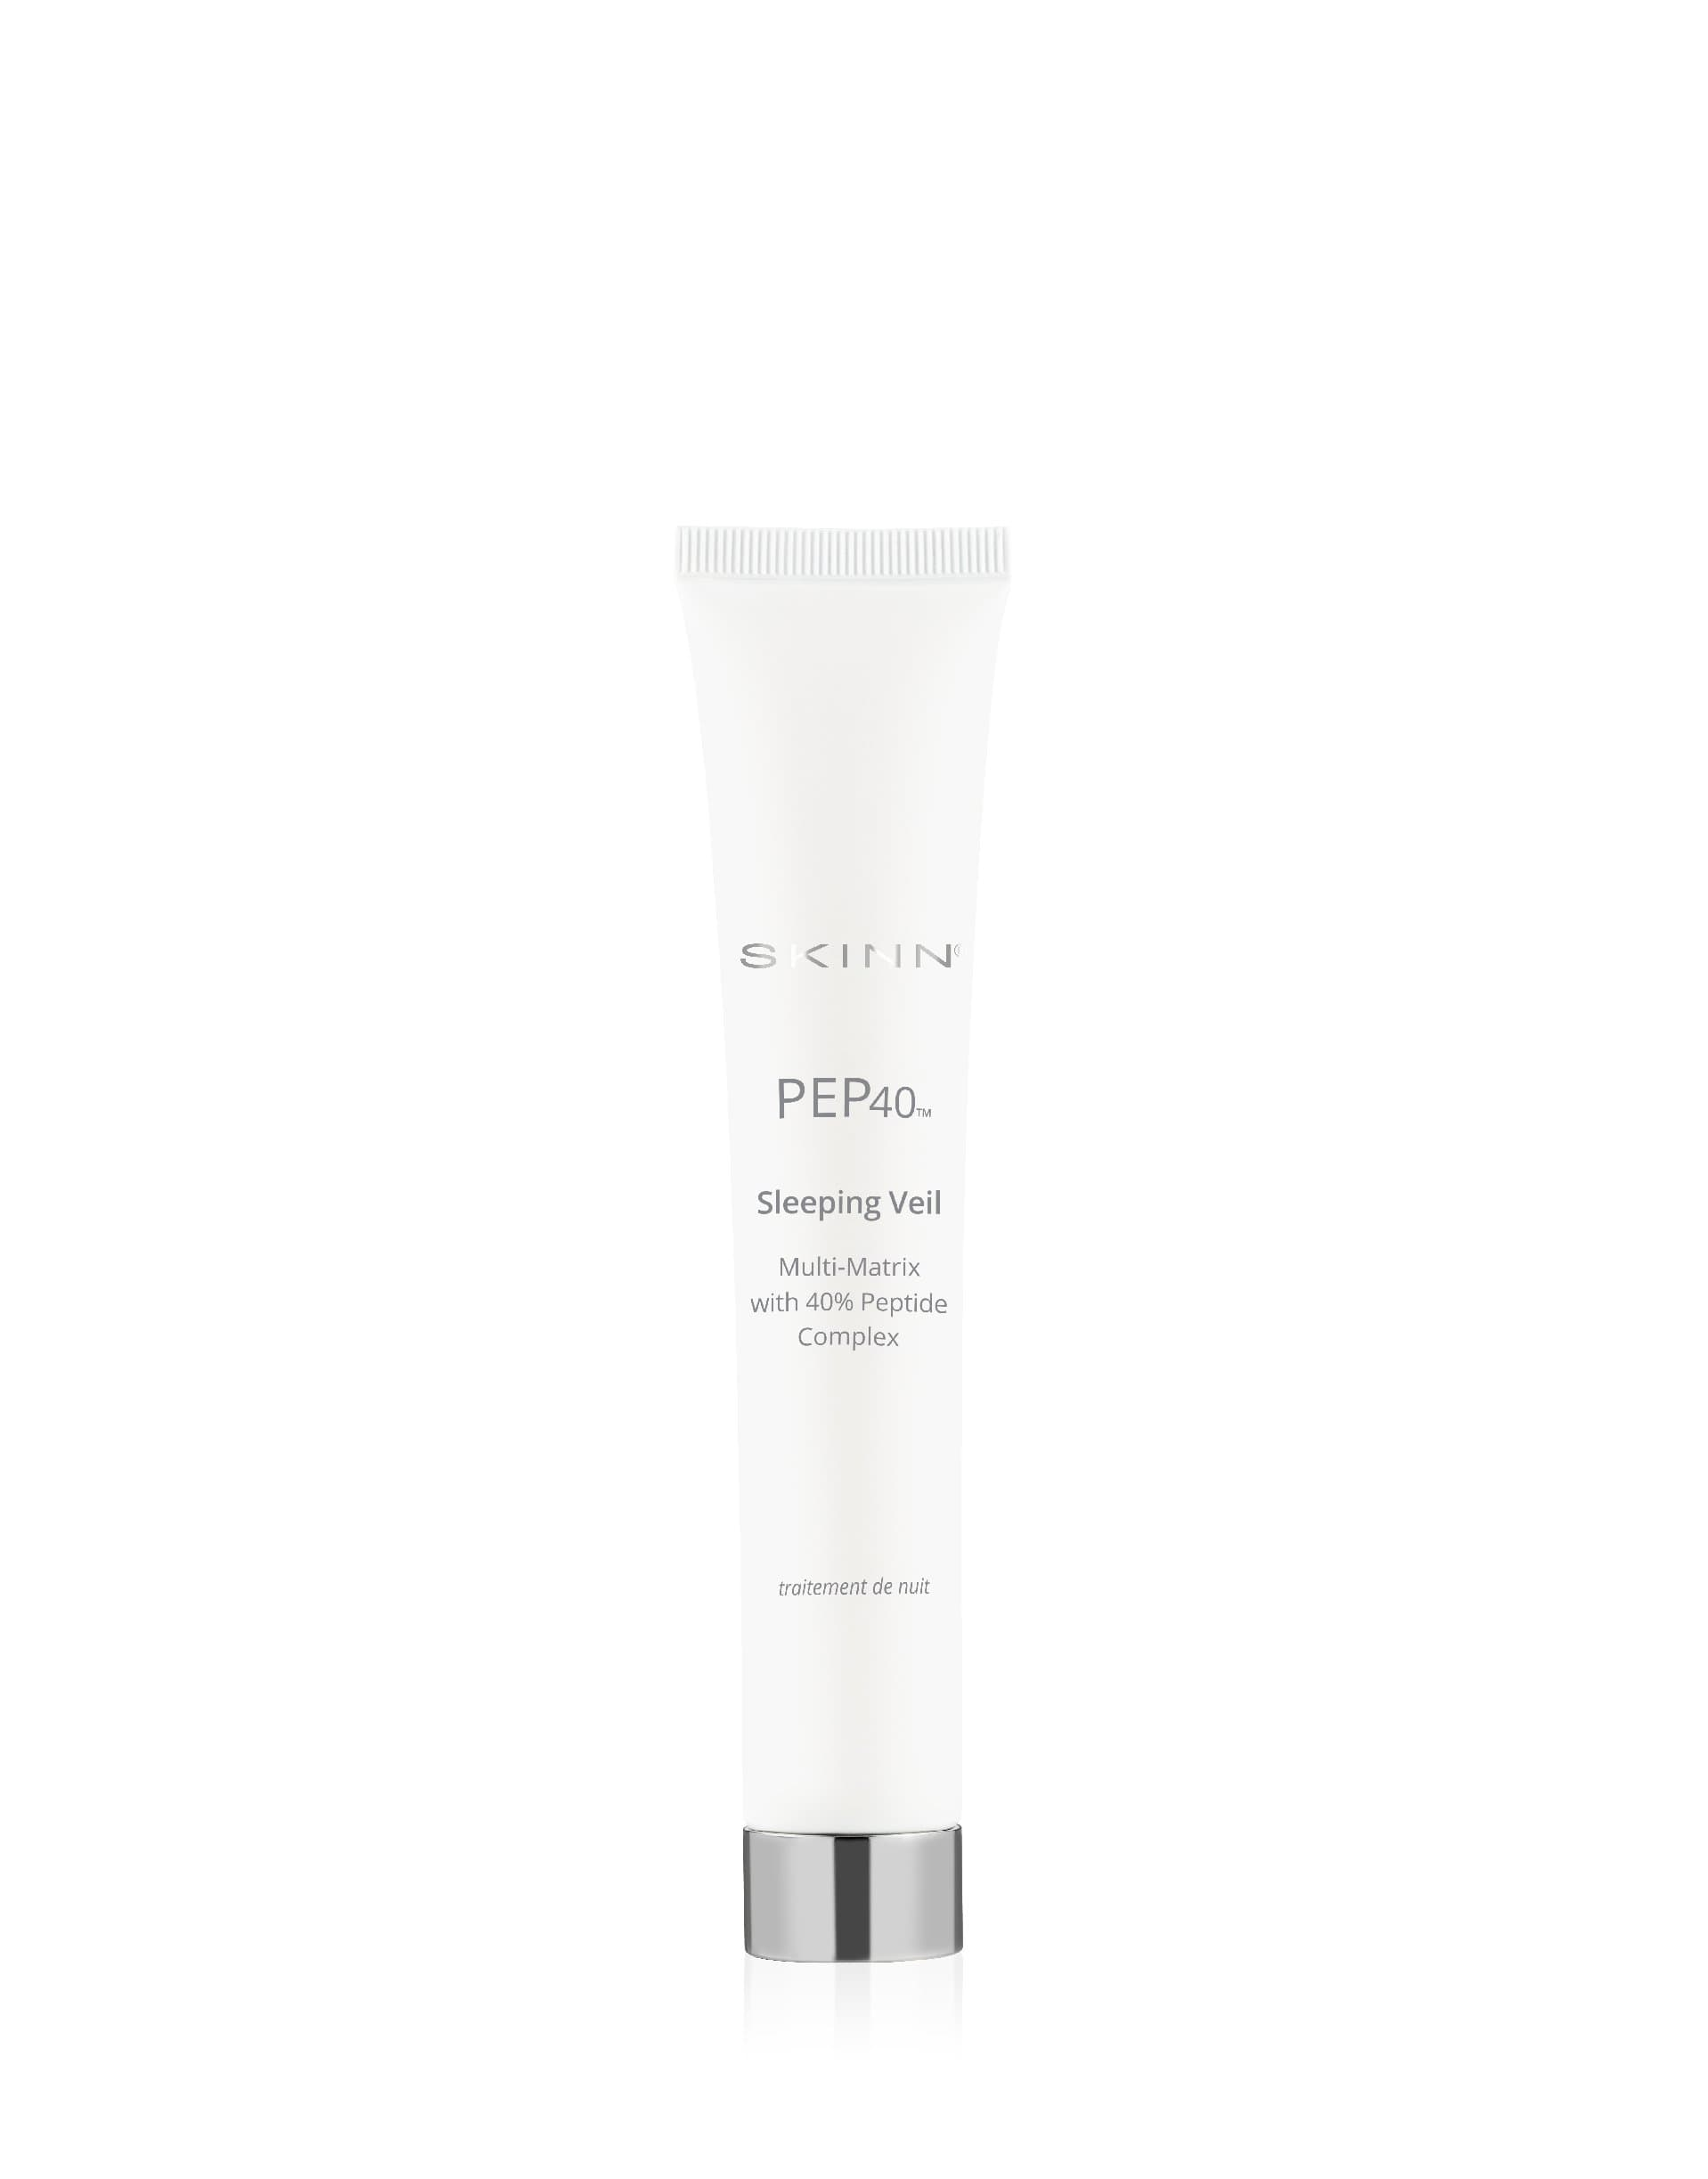 SKINN Sleeping Veil Multi-Matrix with 40% Peptide Complex